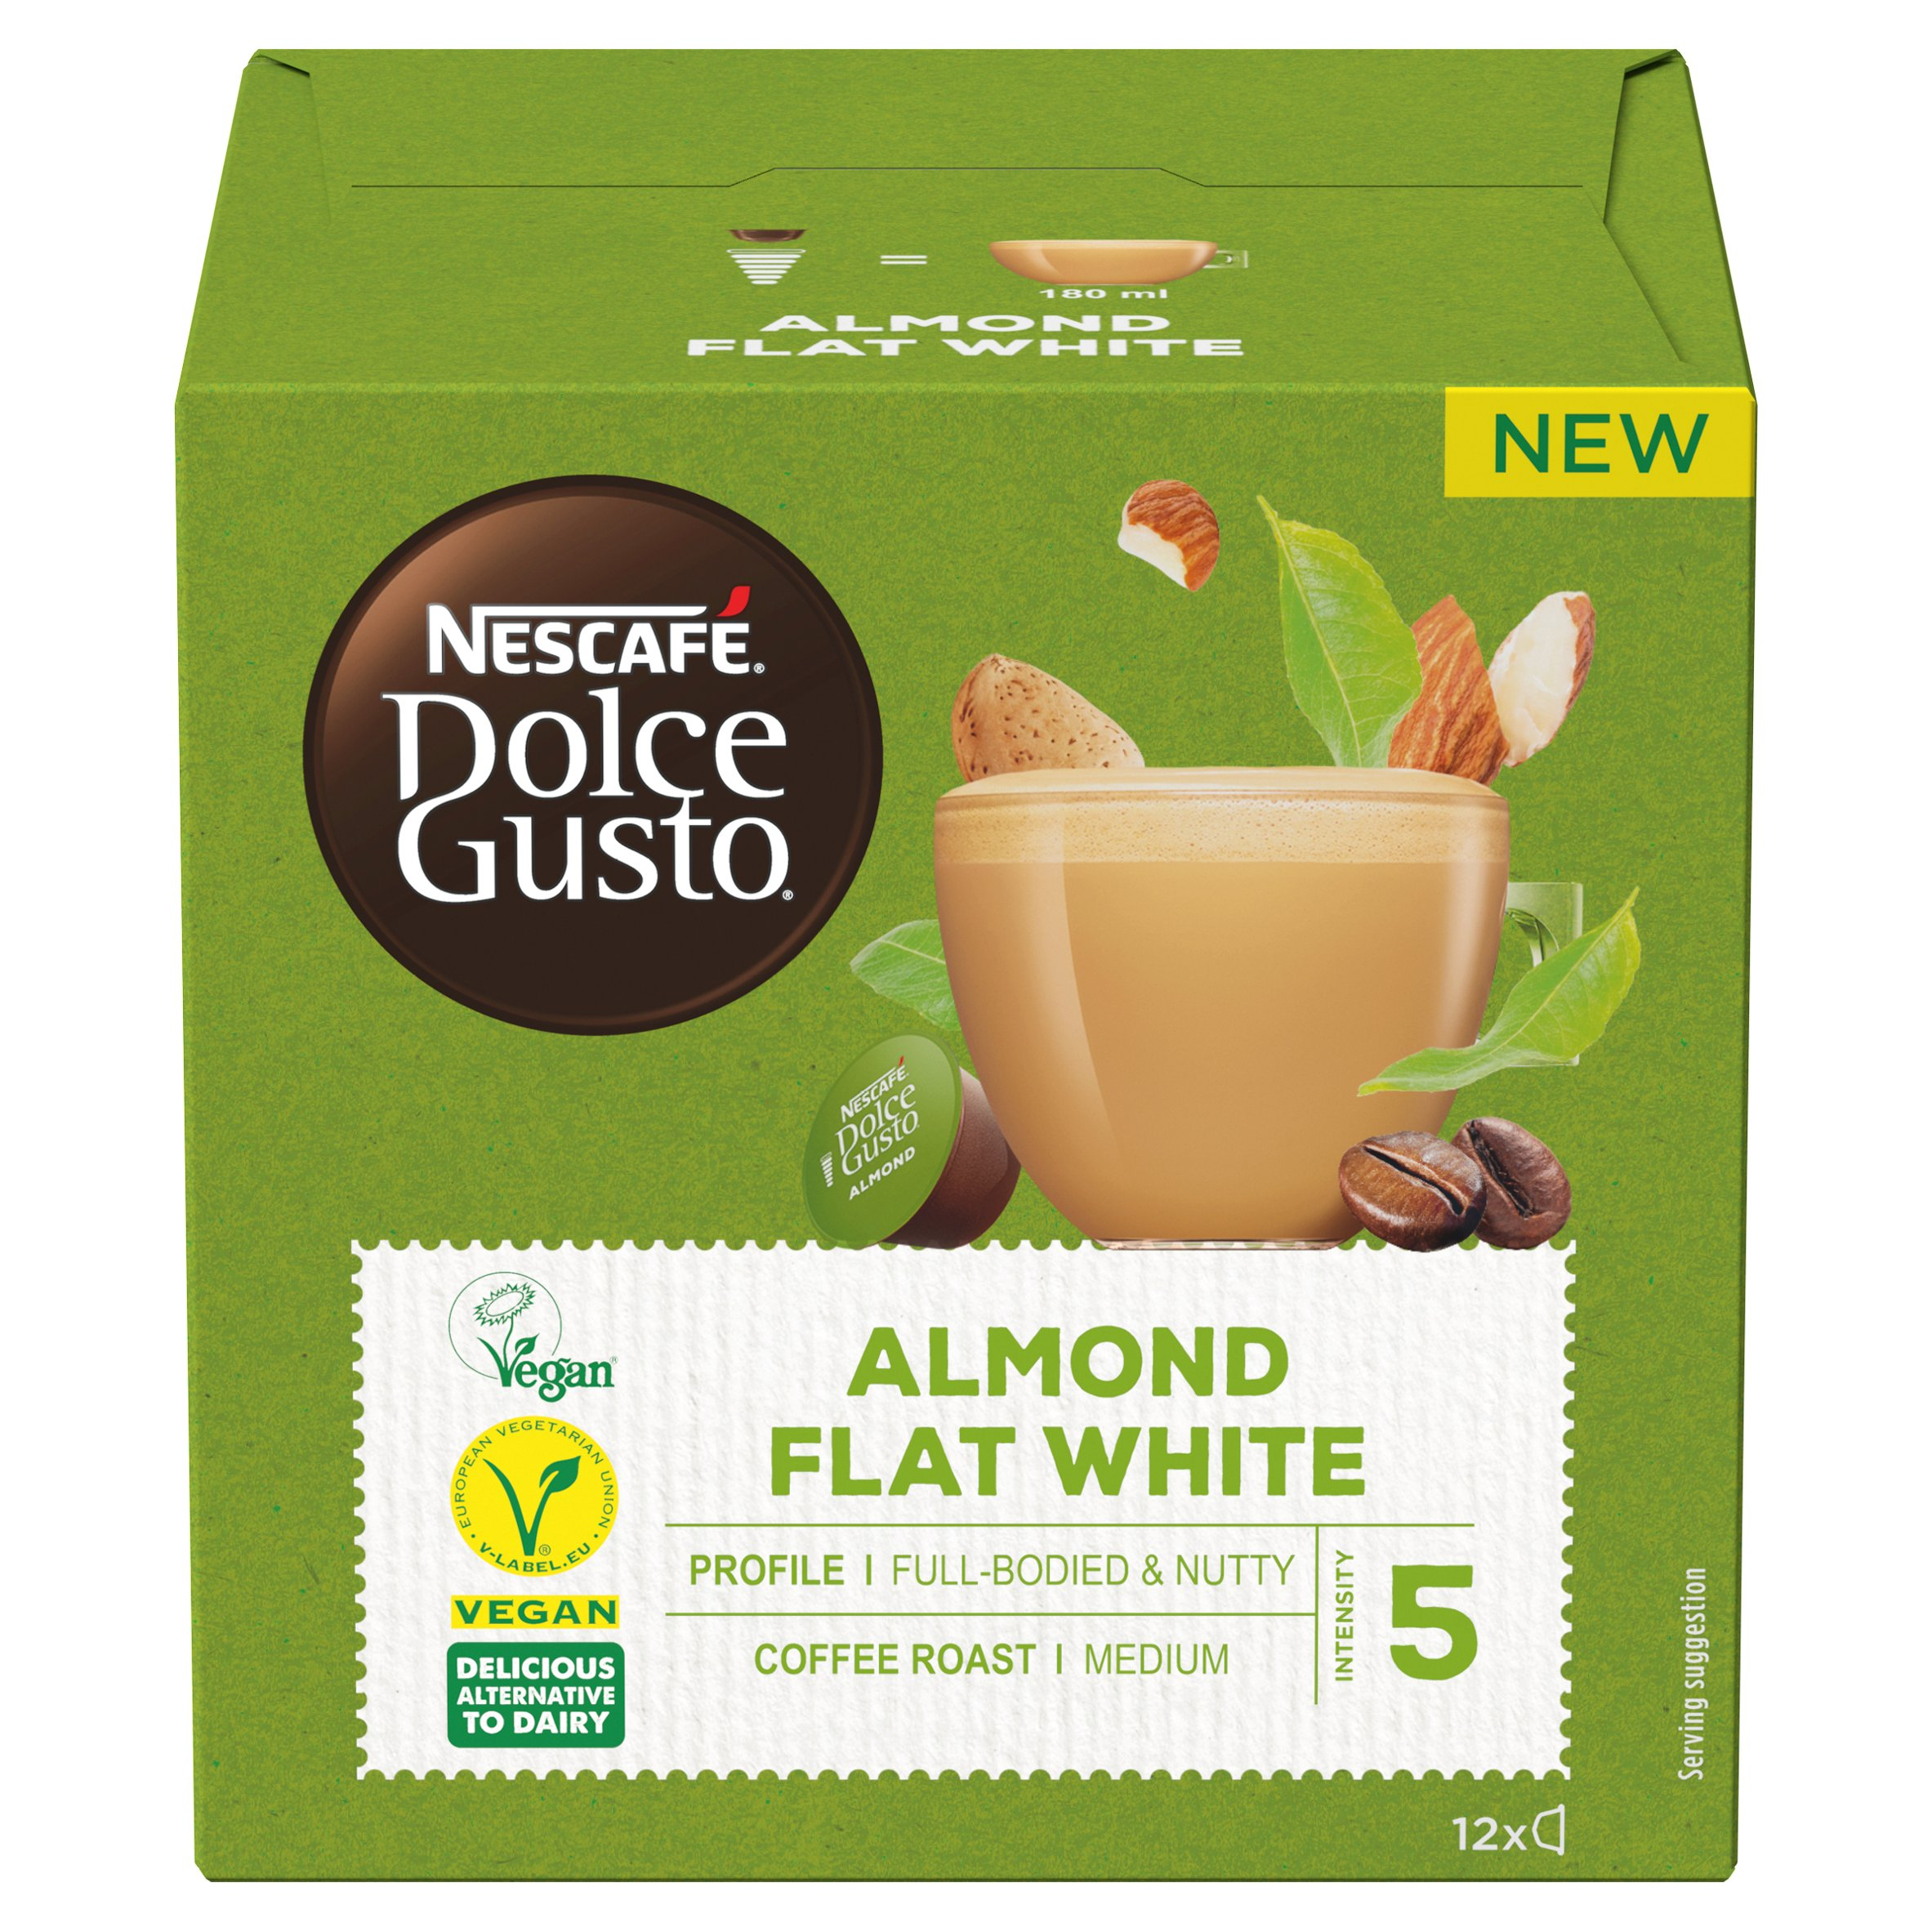 Nescafe Dolce Gusto Almond Flat White Coffee Pods 12 Pack 132G